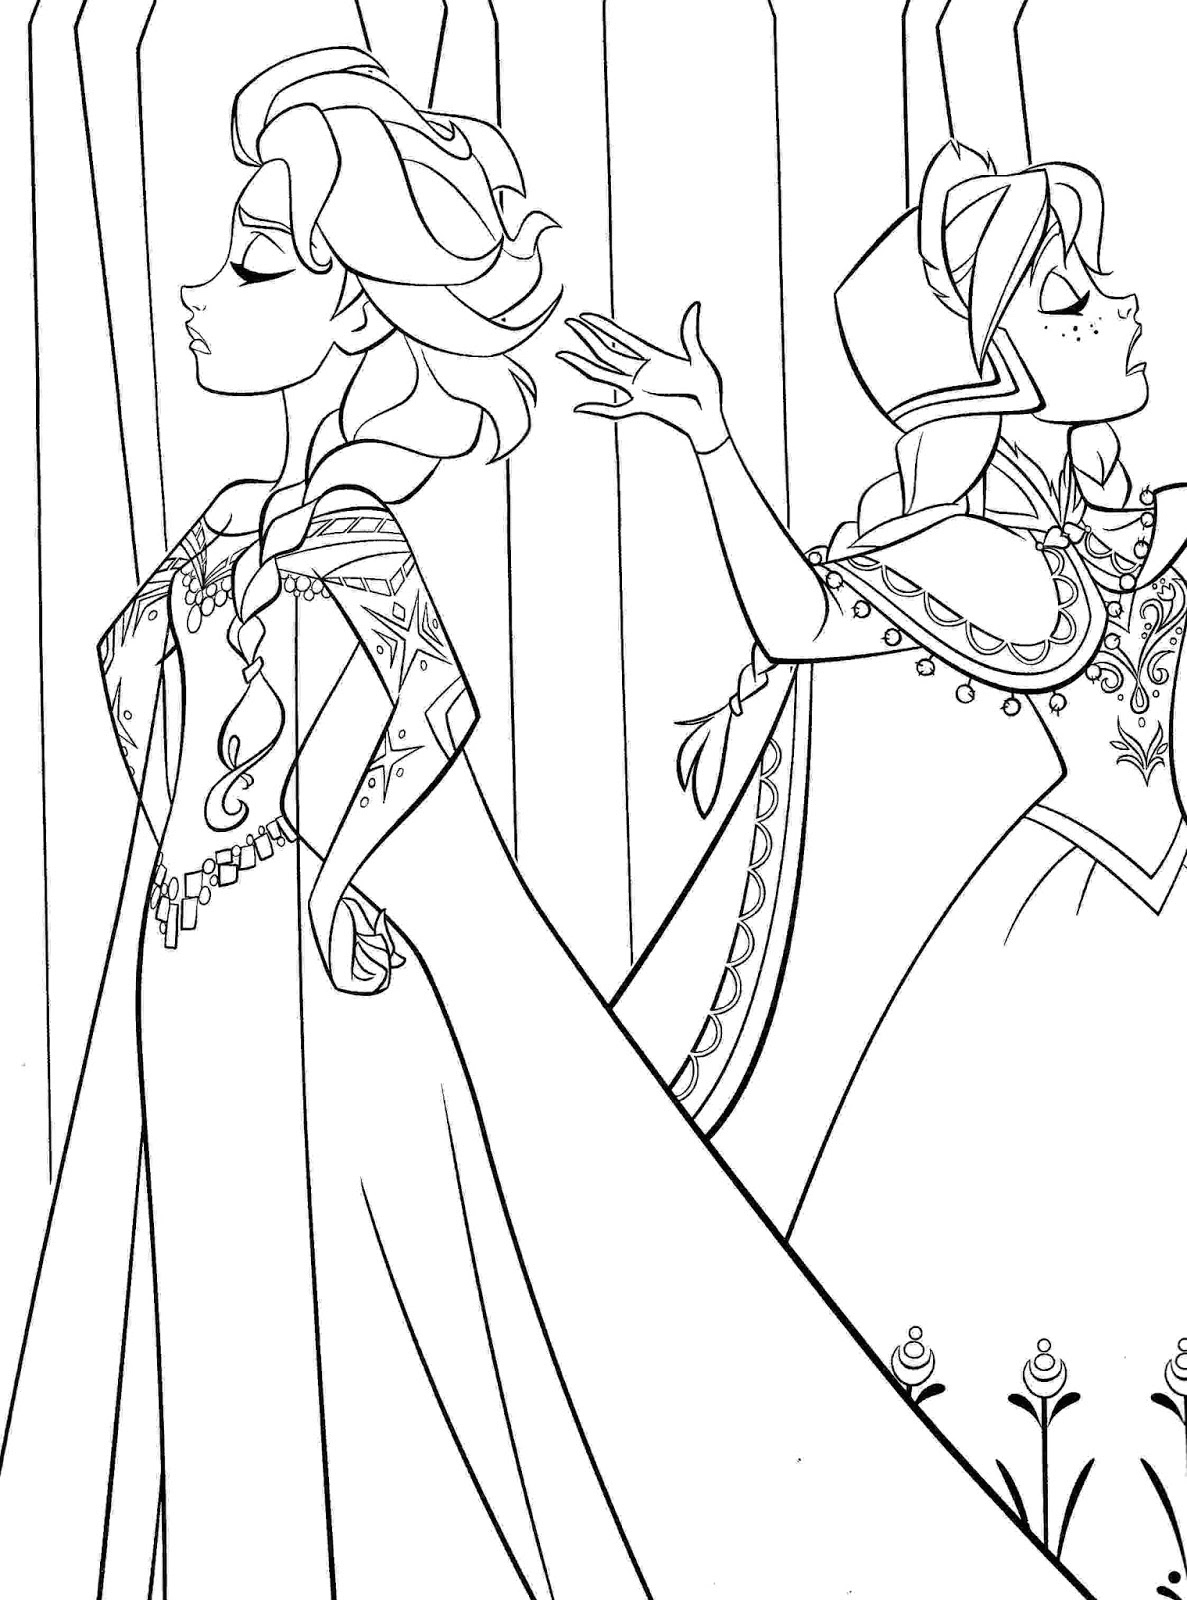 frozen 2 anna and elsa coloring pages